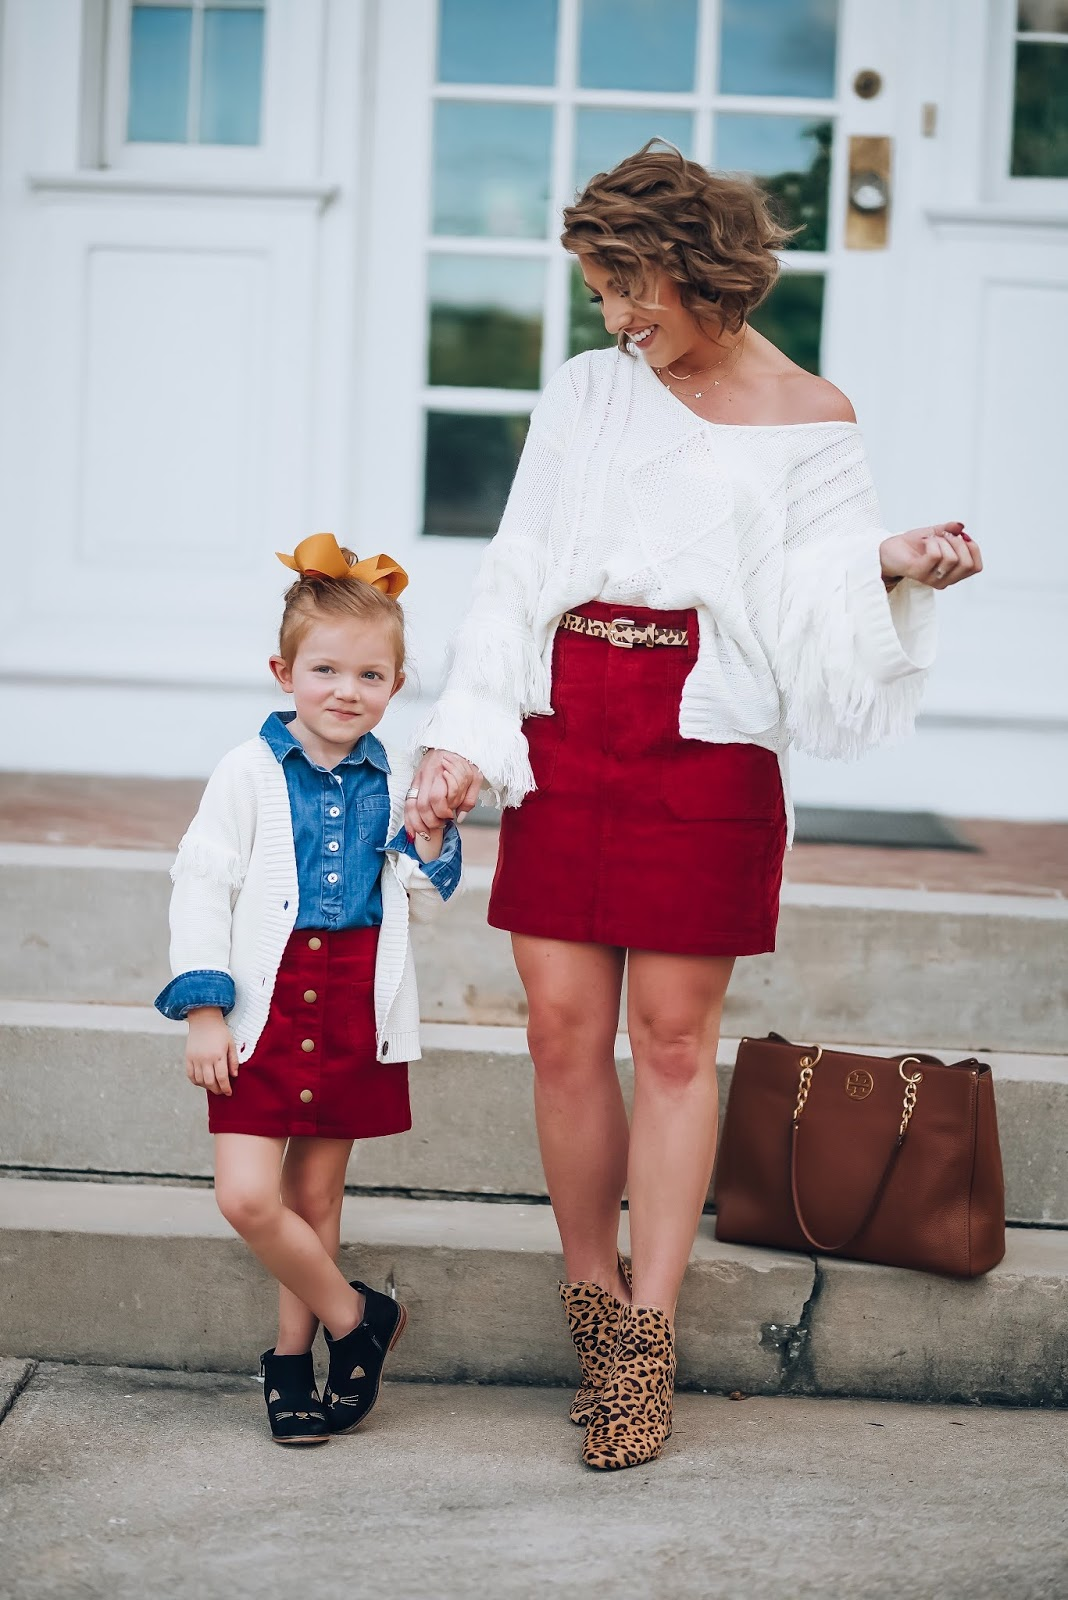 Fall Style: Corduroy Skirts & Fringe Detail Sweaters - Something Delightful Blog